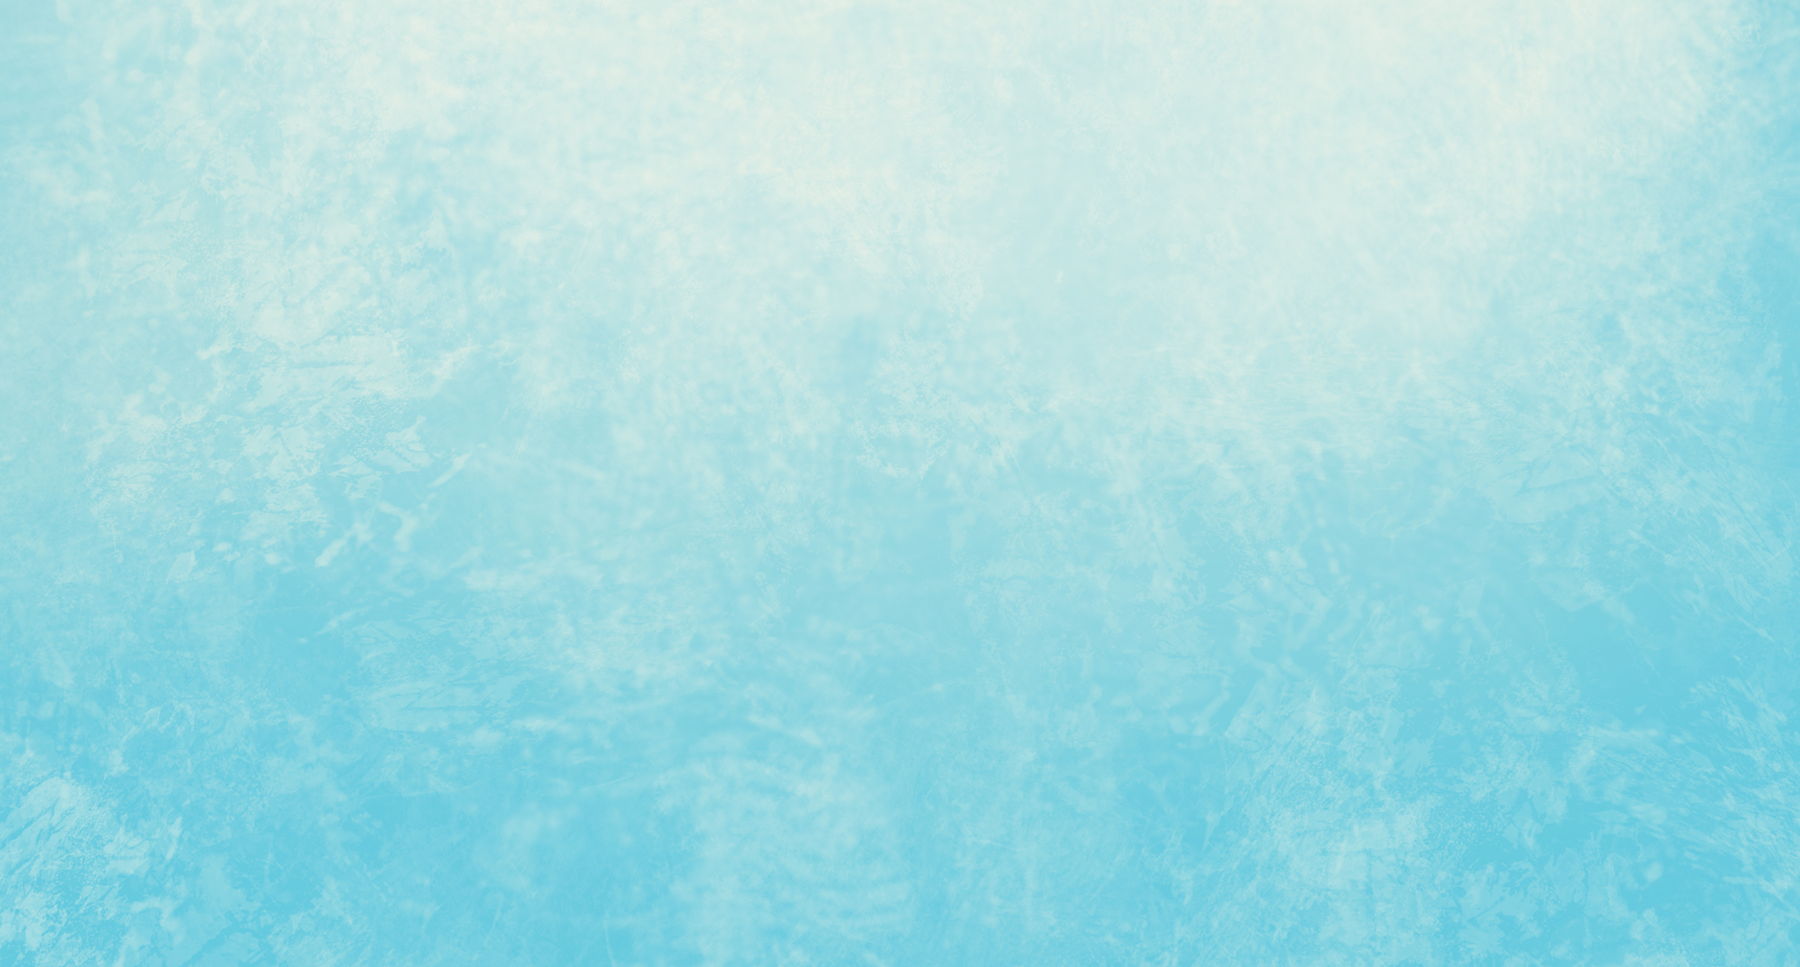 Decorative blue and white background